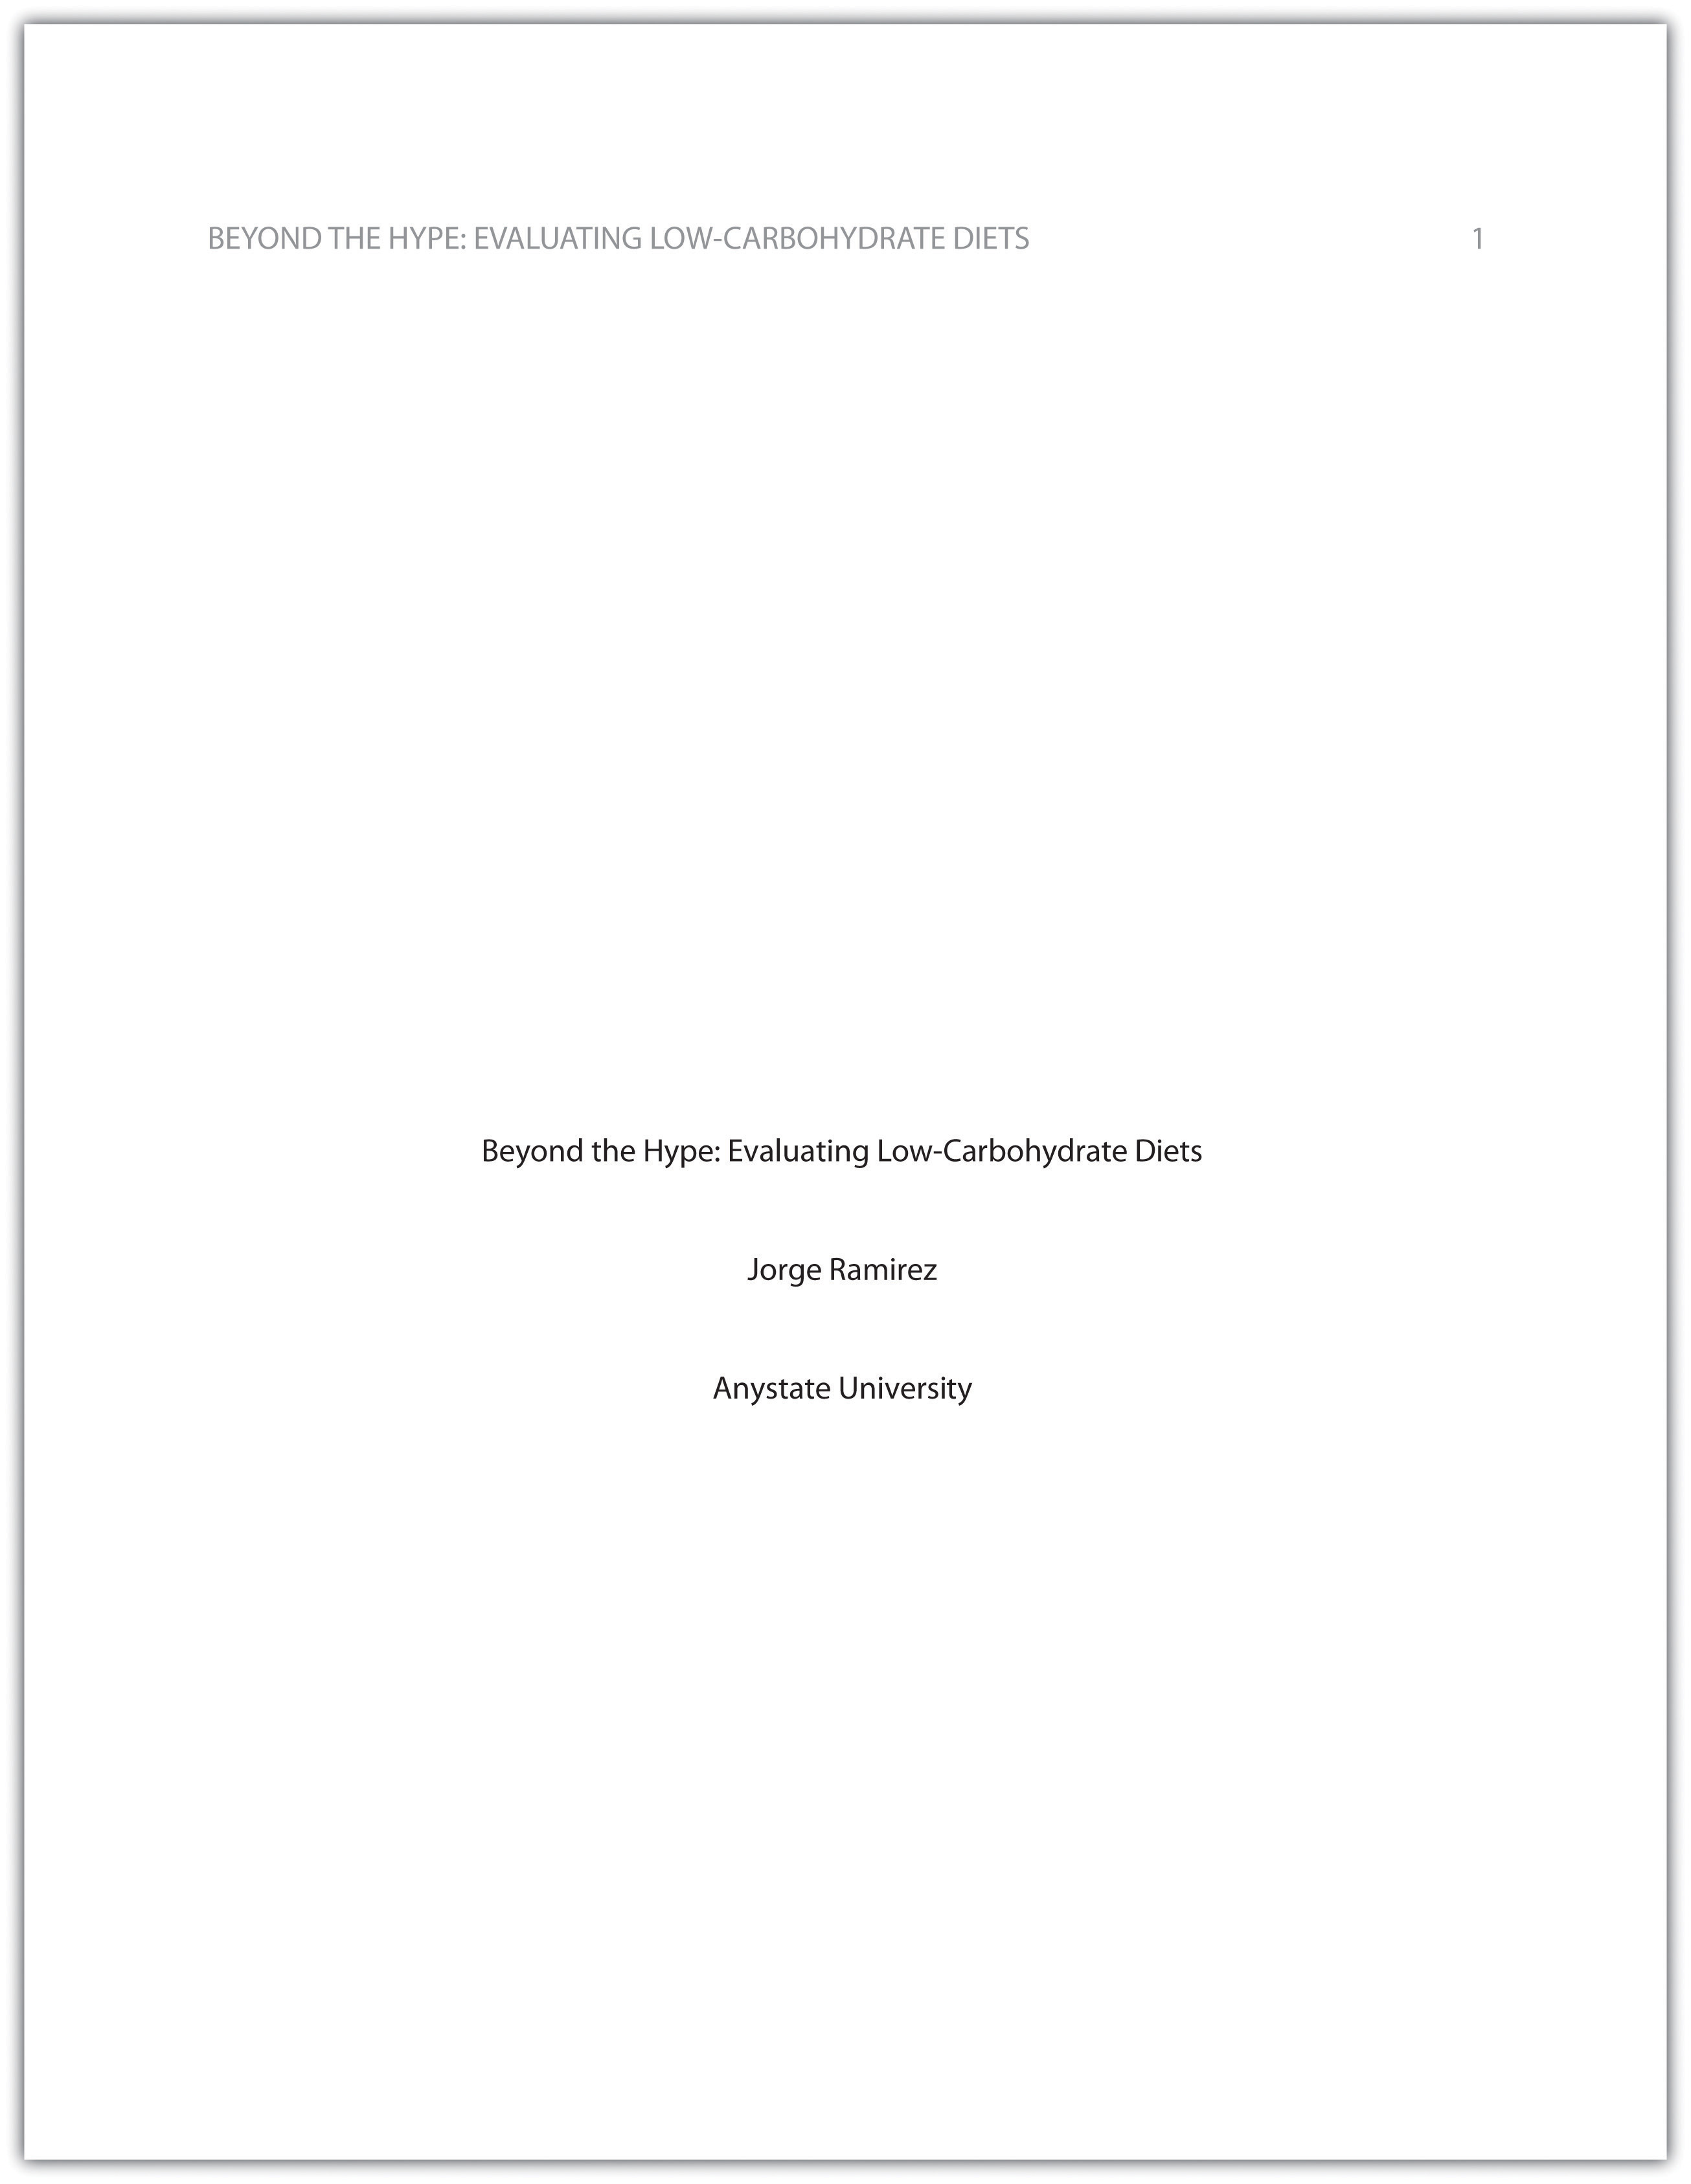 003 Cover Page Format For Research Paper Astounding Proper Title Layout A Example Full